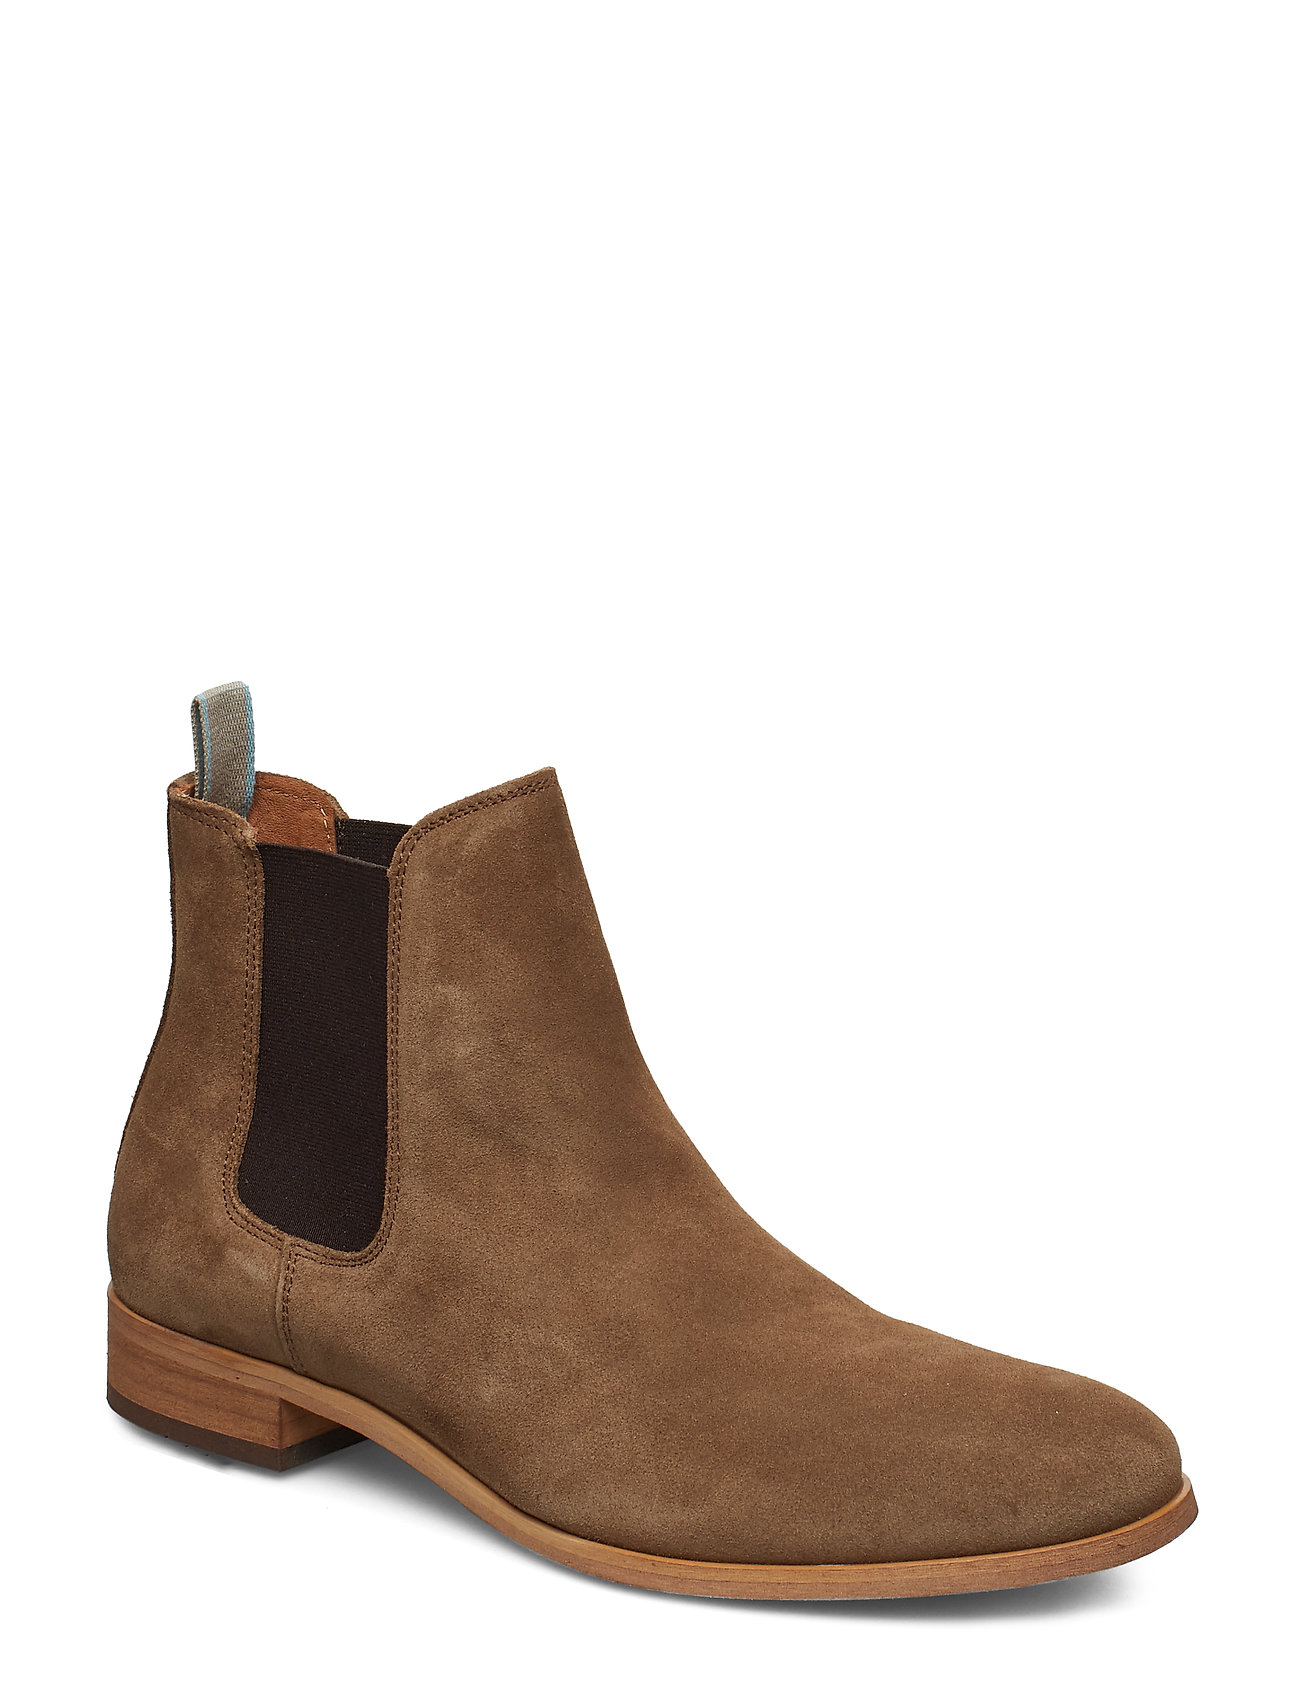 Image of Stb-Dev S Shoes Chelsea Boots Brun Shoe The Bear (3201656451)